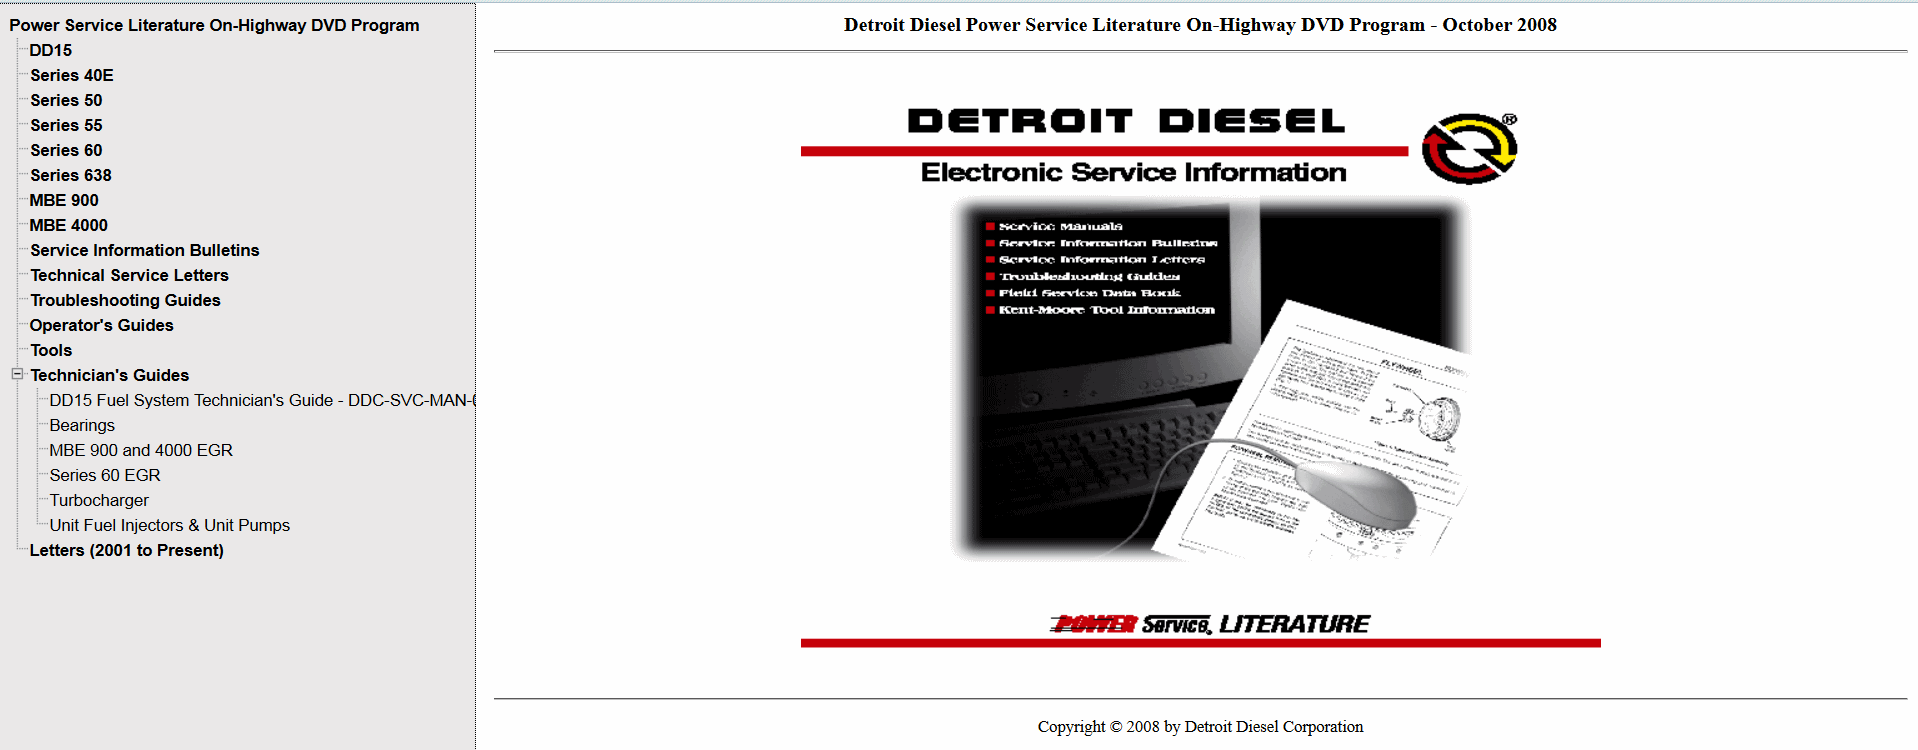 Detroit Diesel Power Service Literature On